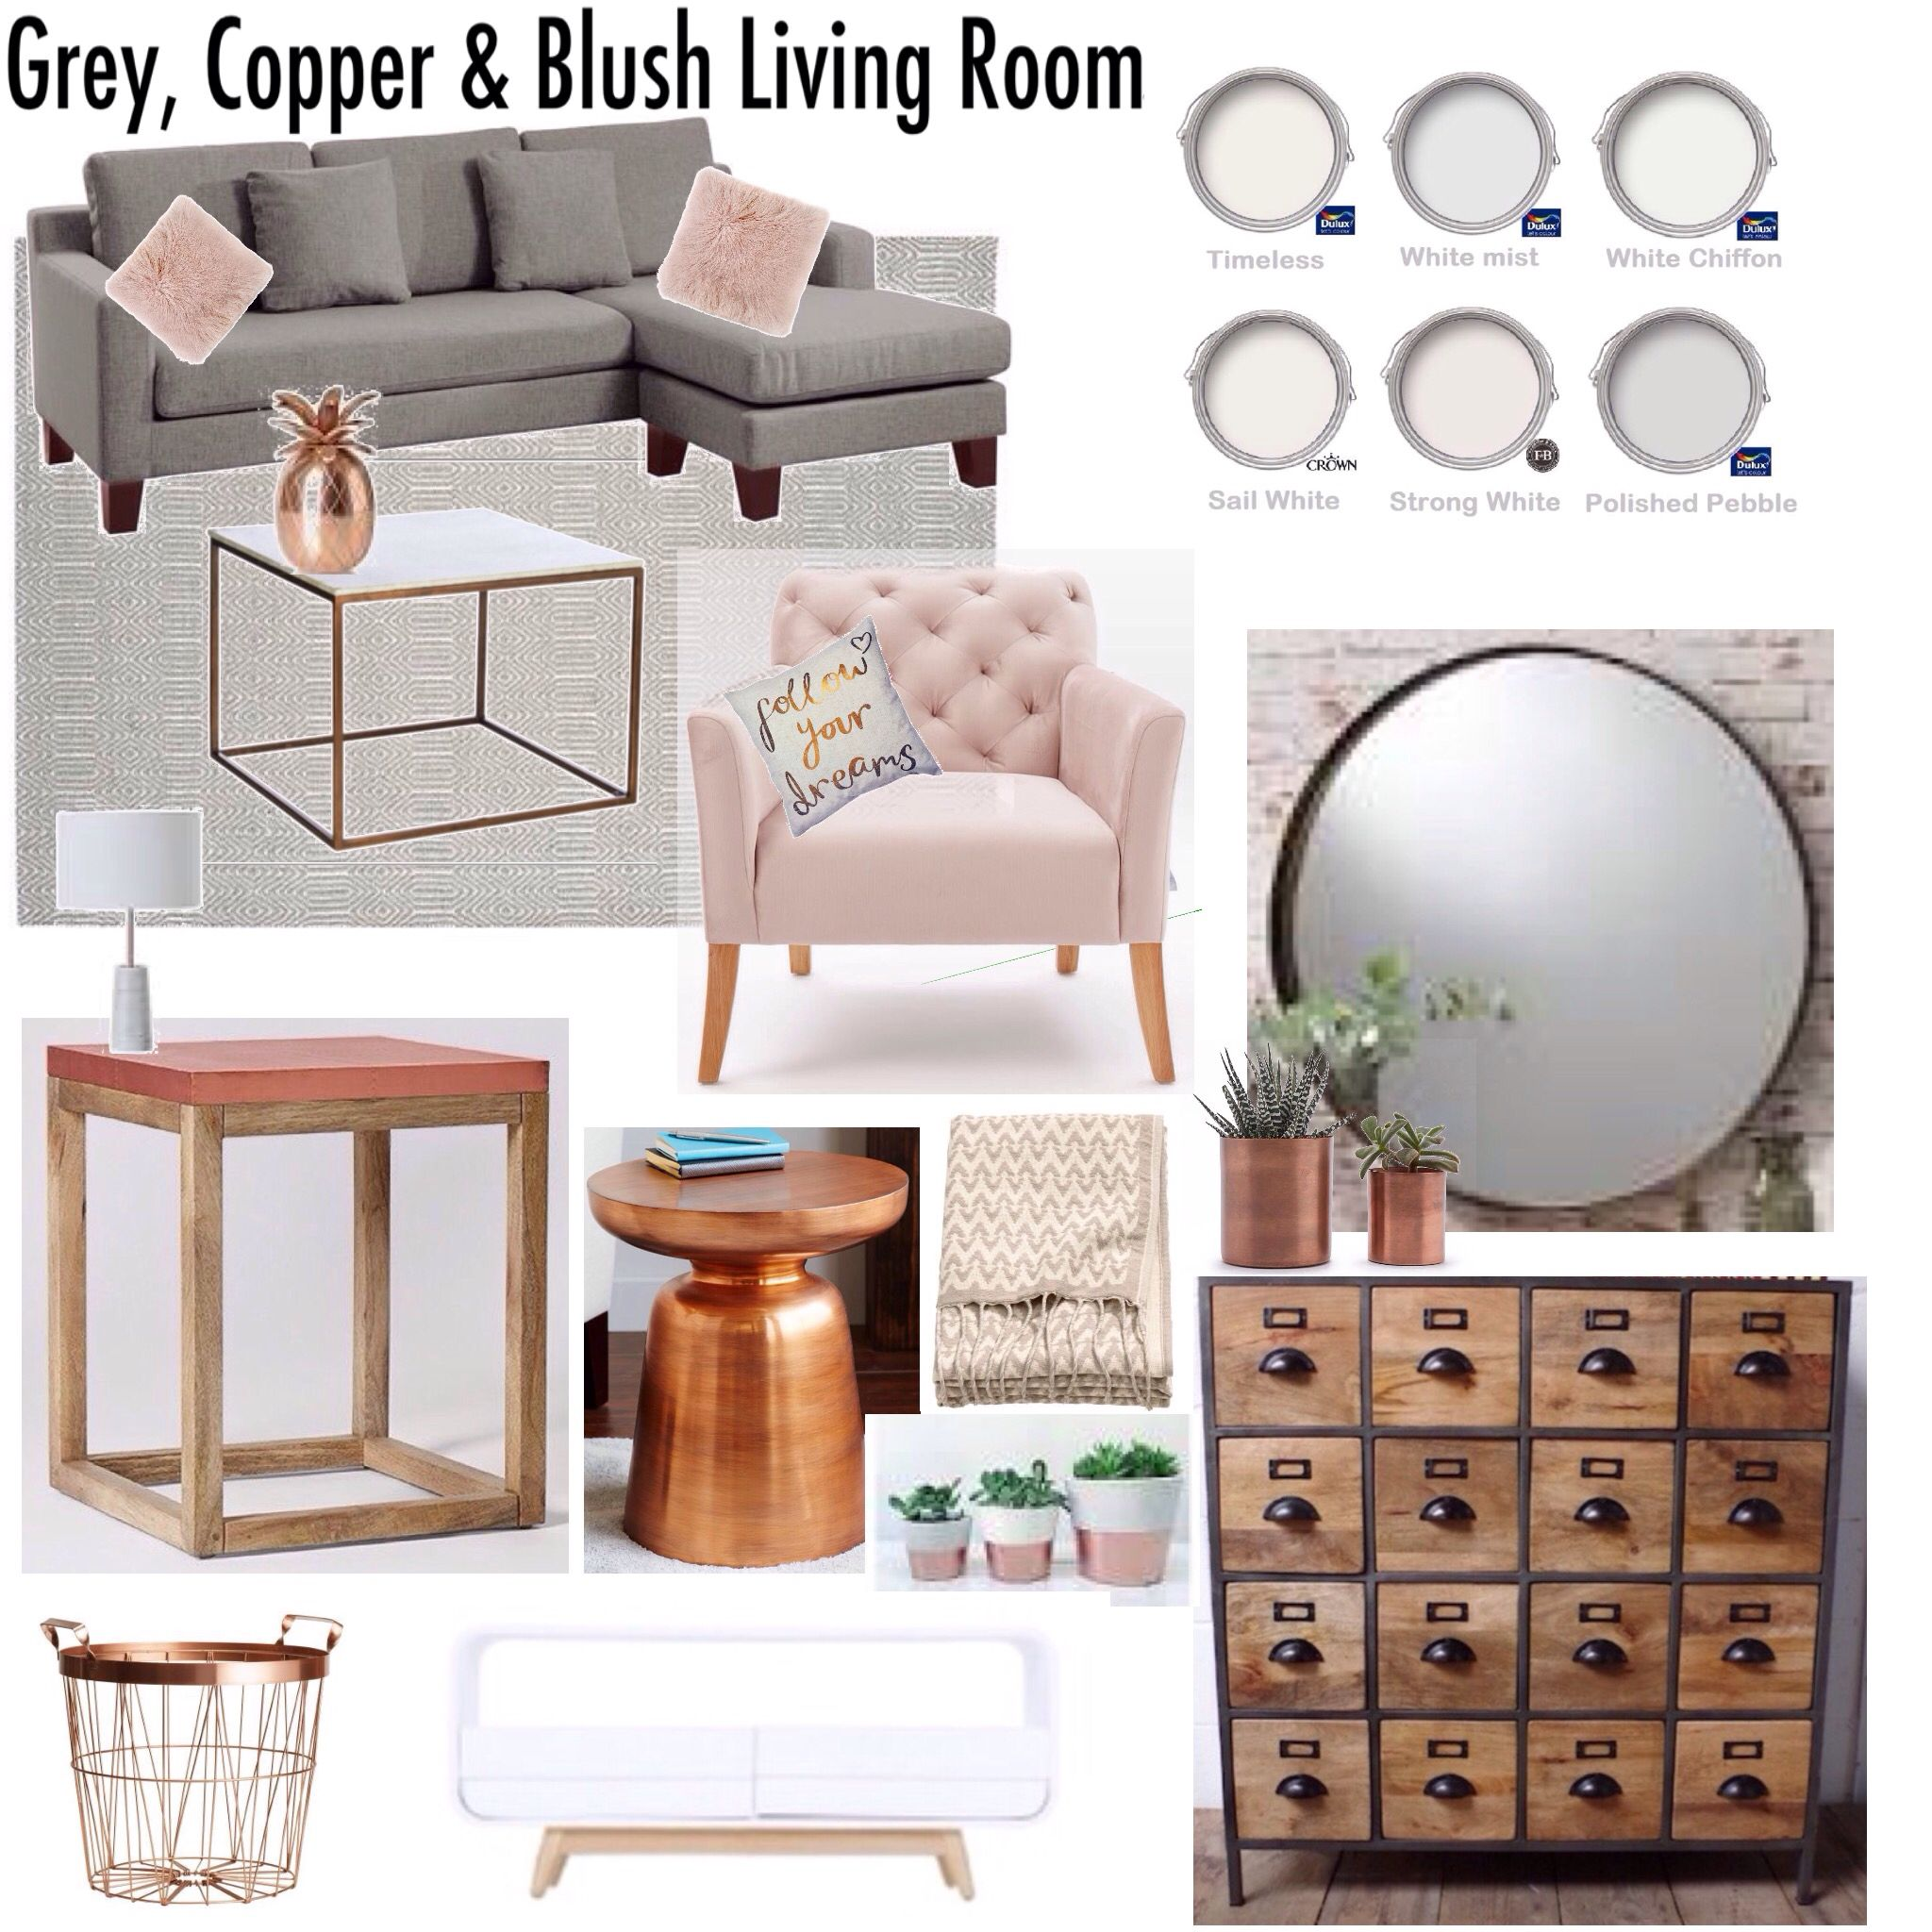 Best Gray Copper Blush Living Room Decor Mood Board Decor Ideas Pinterest Blush Living Room 400 x 300